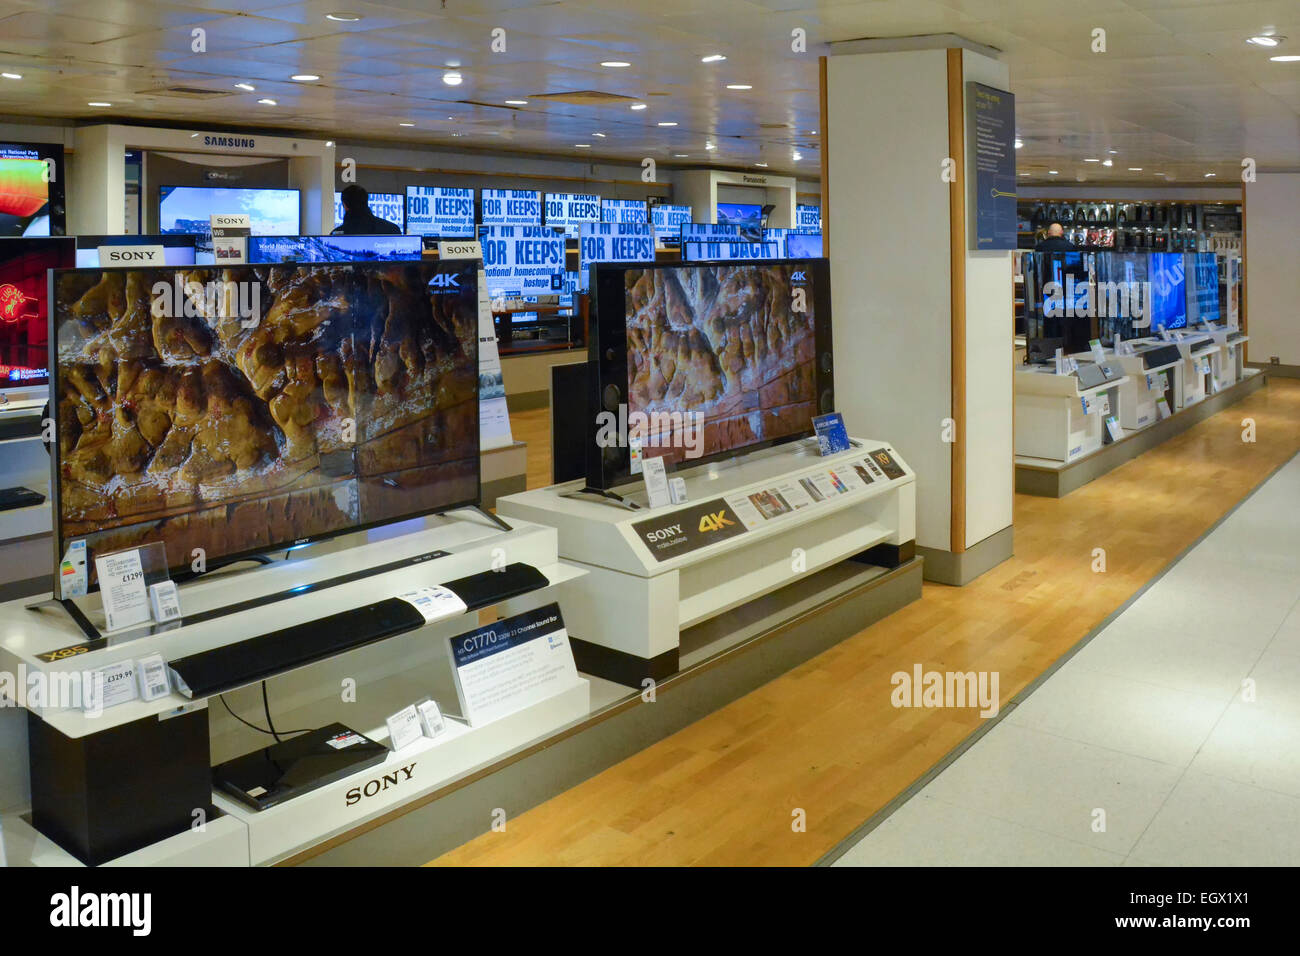 tvs store stock photos tvs store stock images alamy. Black Bedroom Furniture Sets. Home Design Ideas